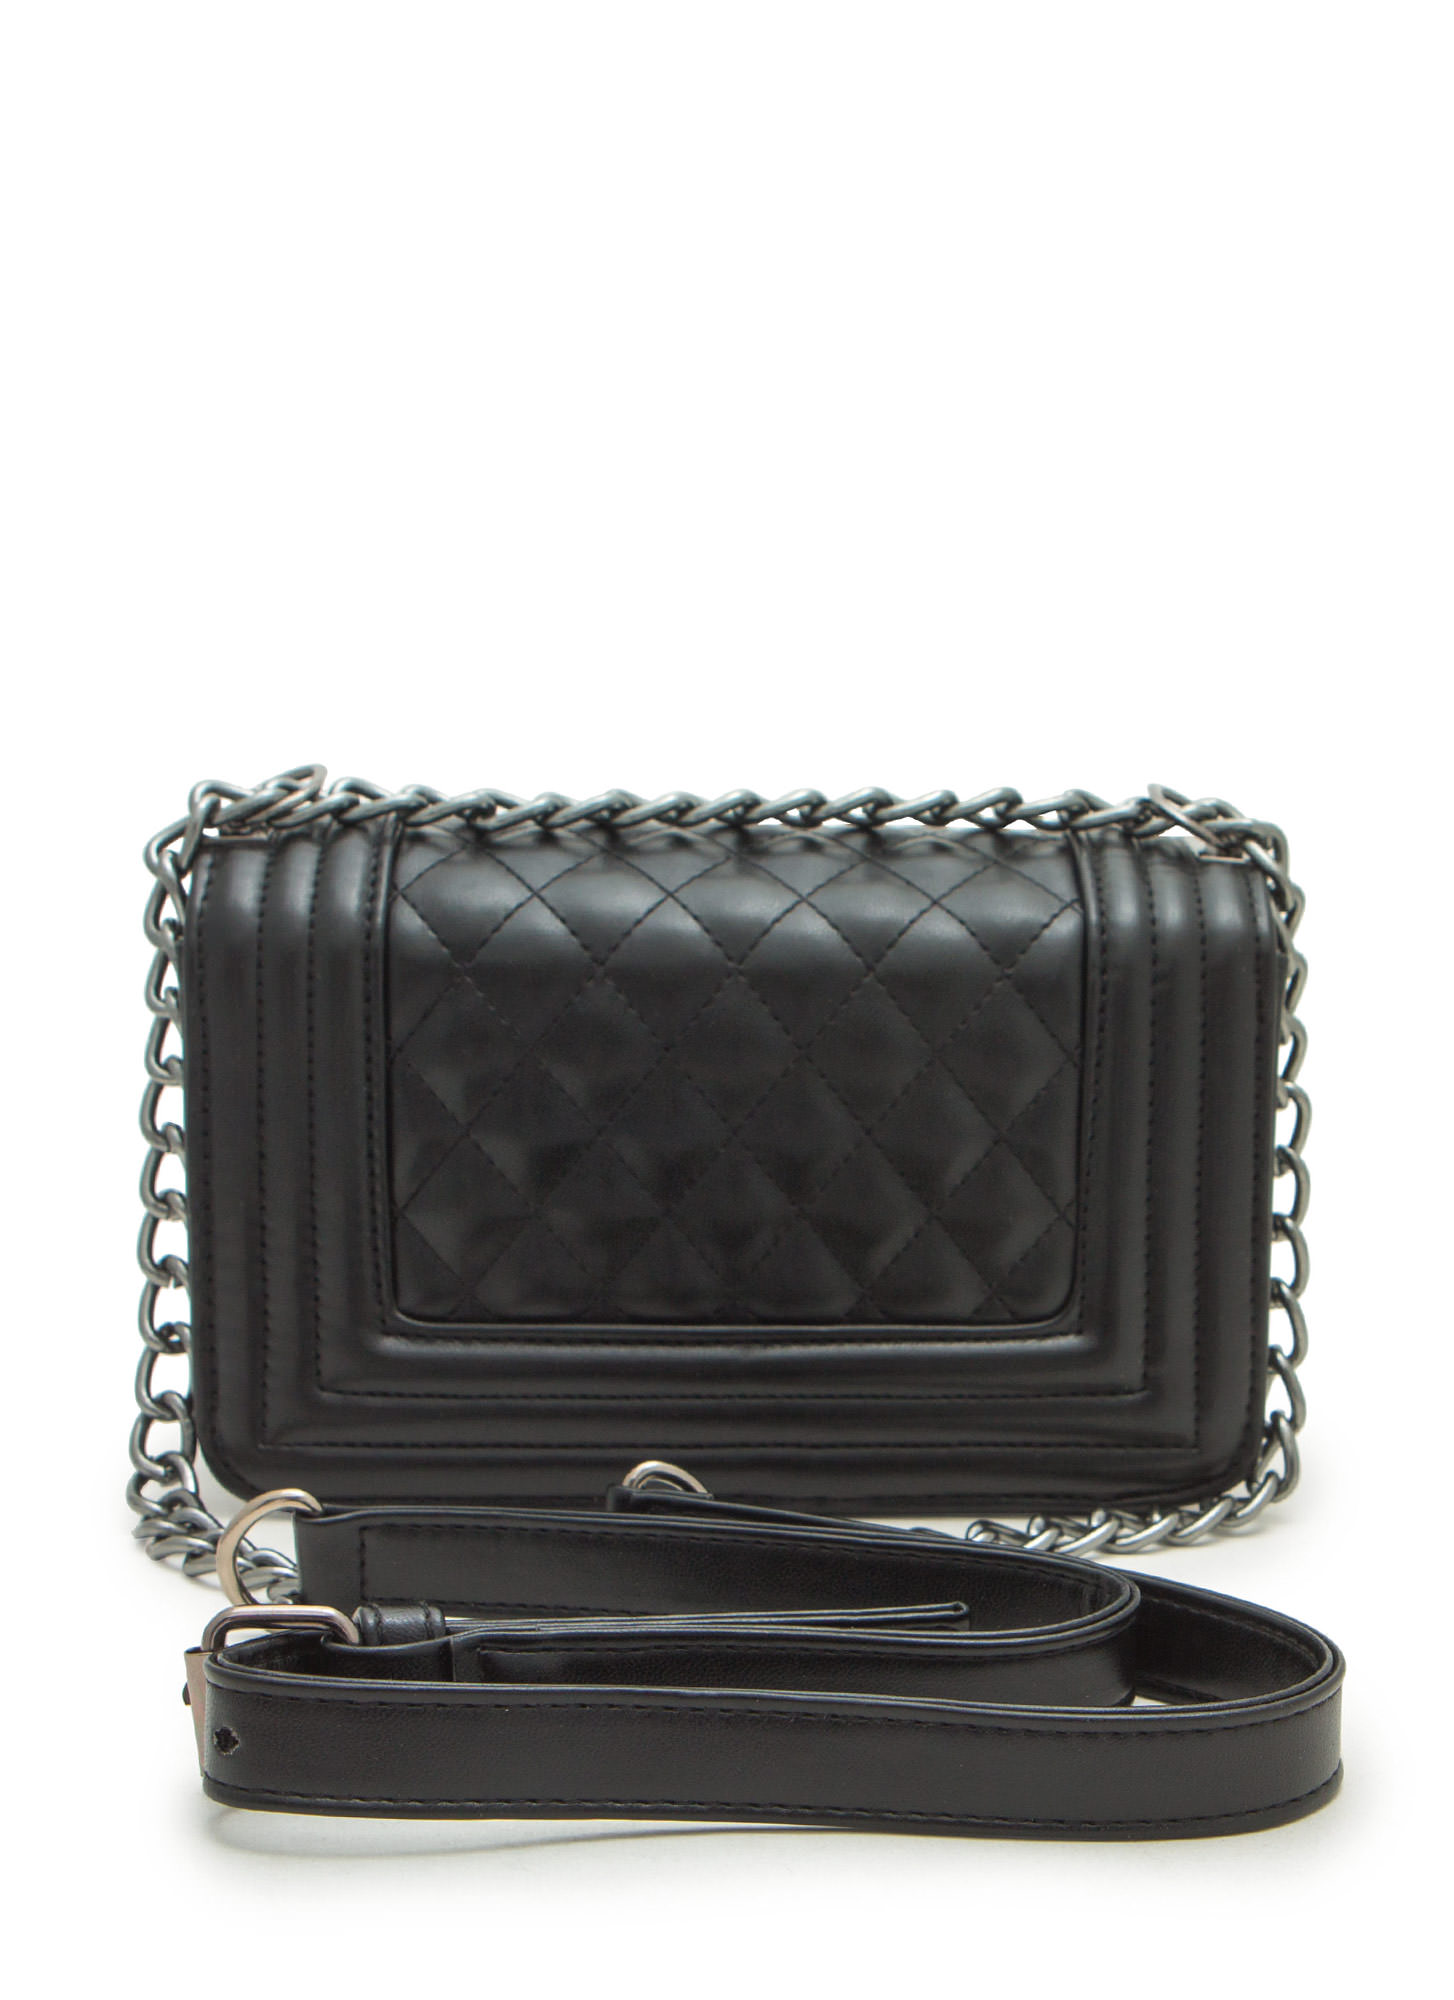 Stitch Quilted Faux Leather Purse BLACK